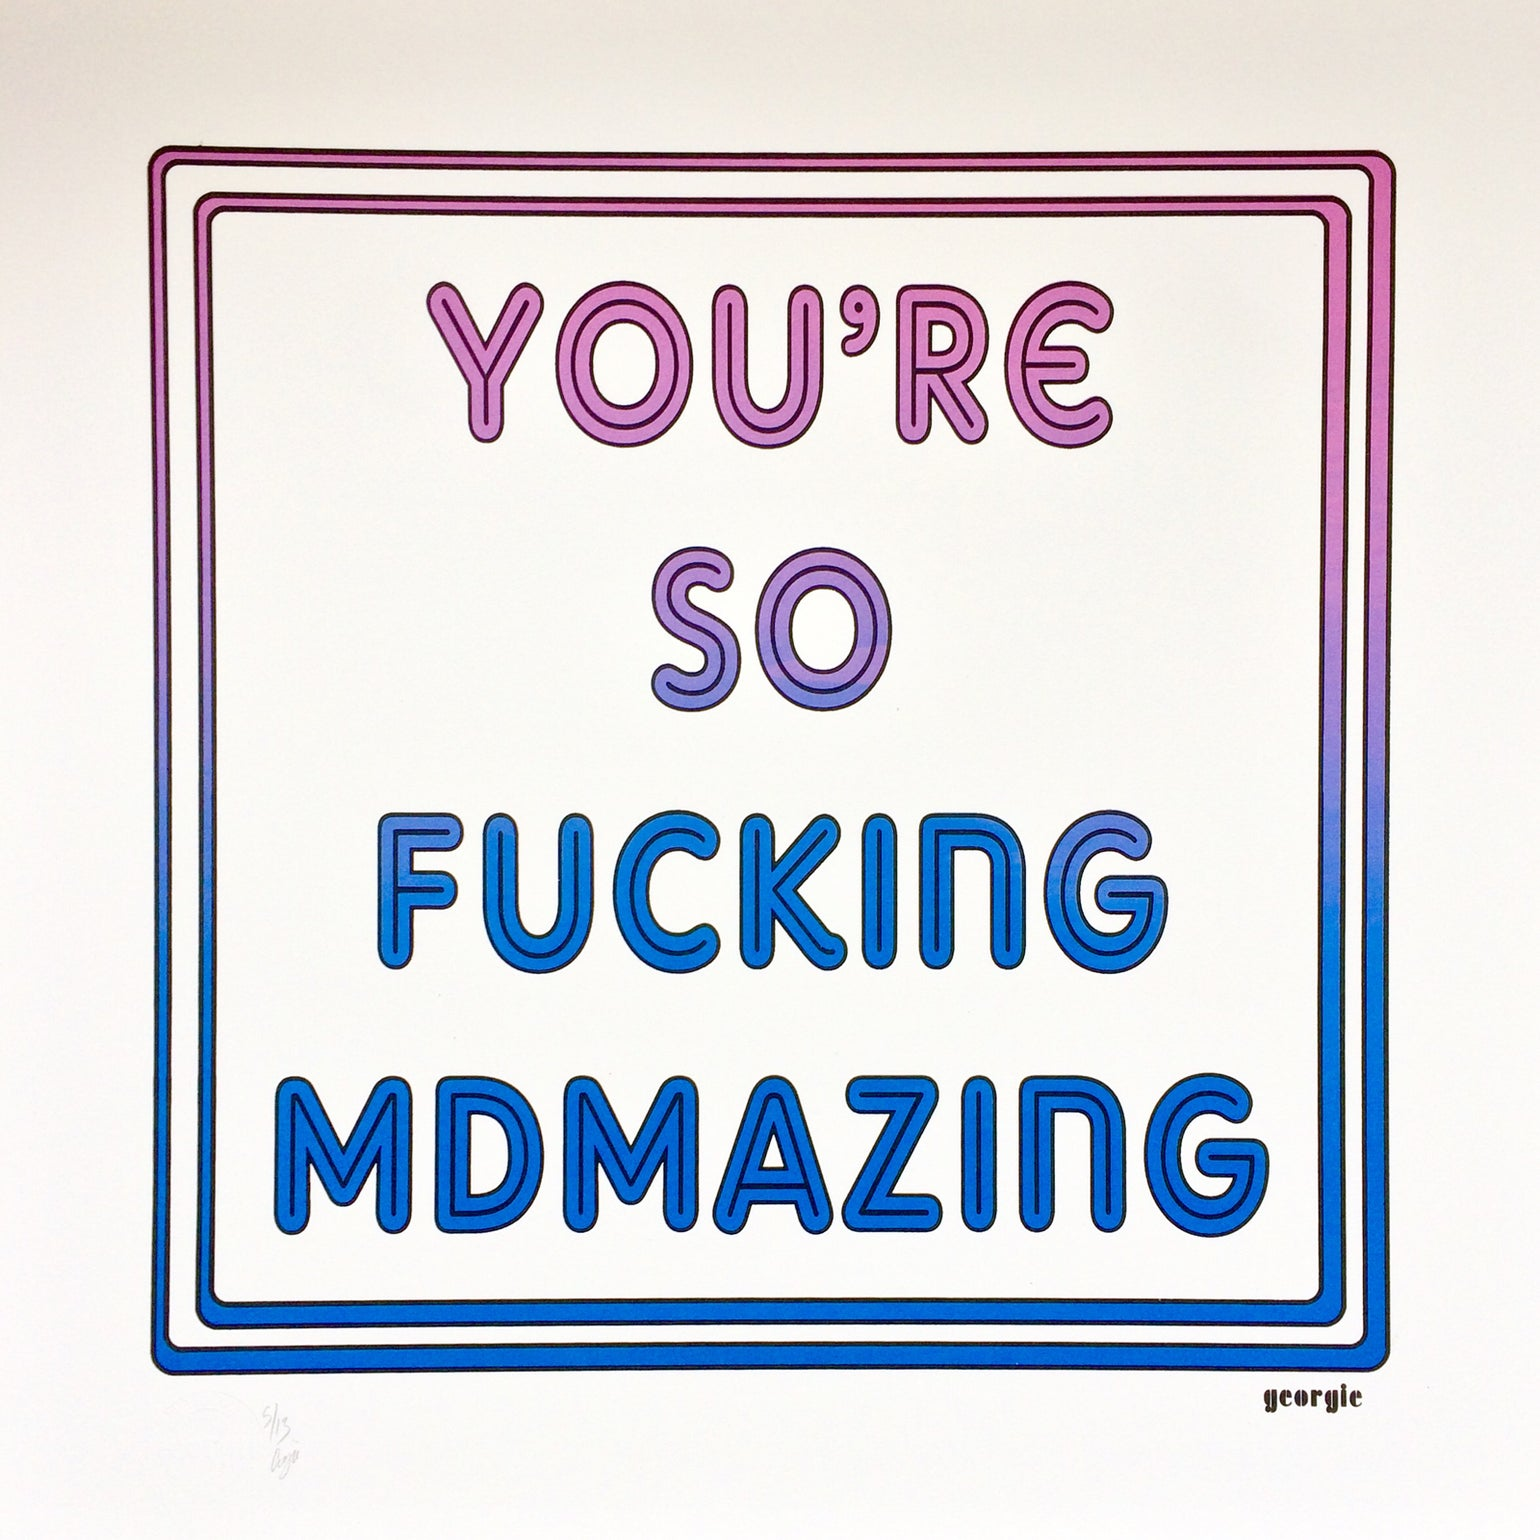 Image of MDMAZING screen print.